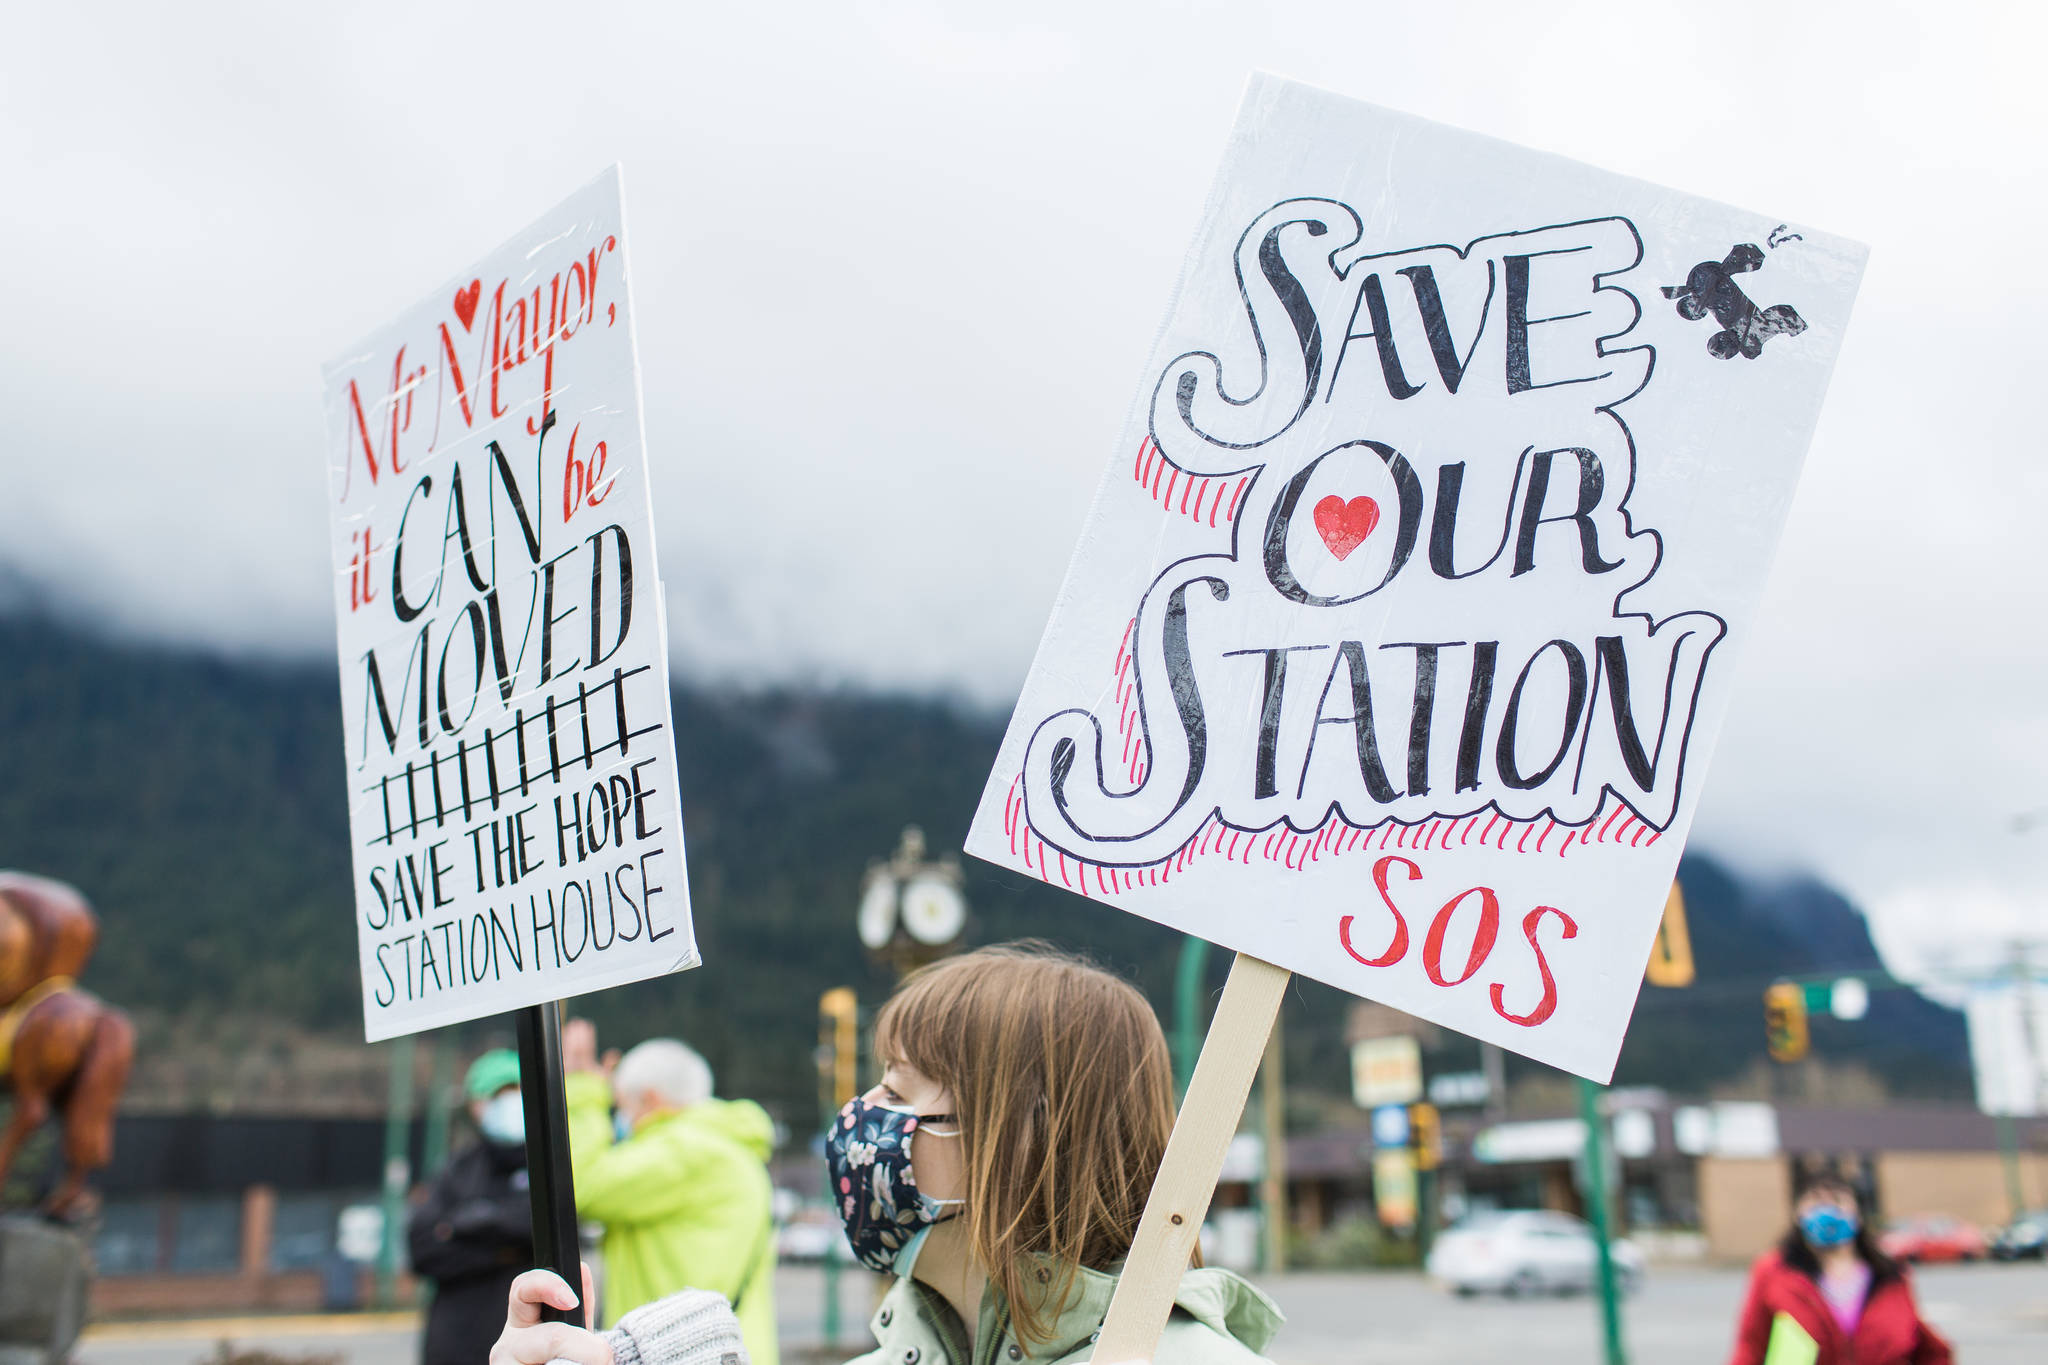 About 80 demonstrators walked through Hope with signs in support of saving the Station House. (Photo/Christian Ward)